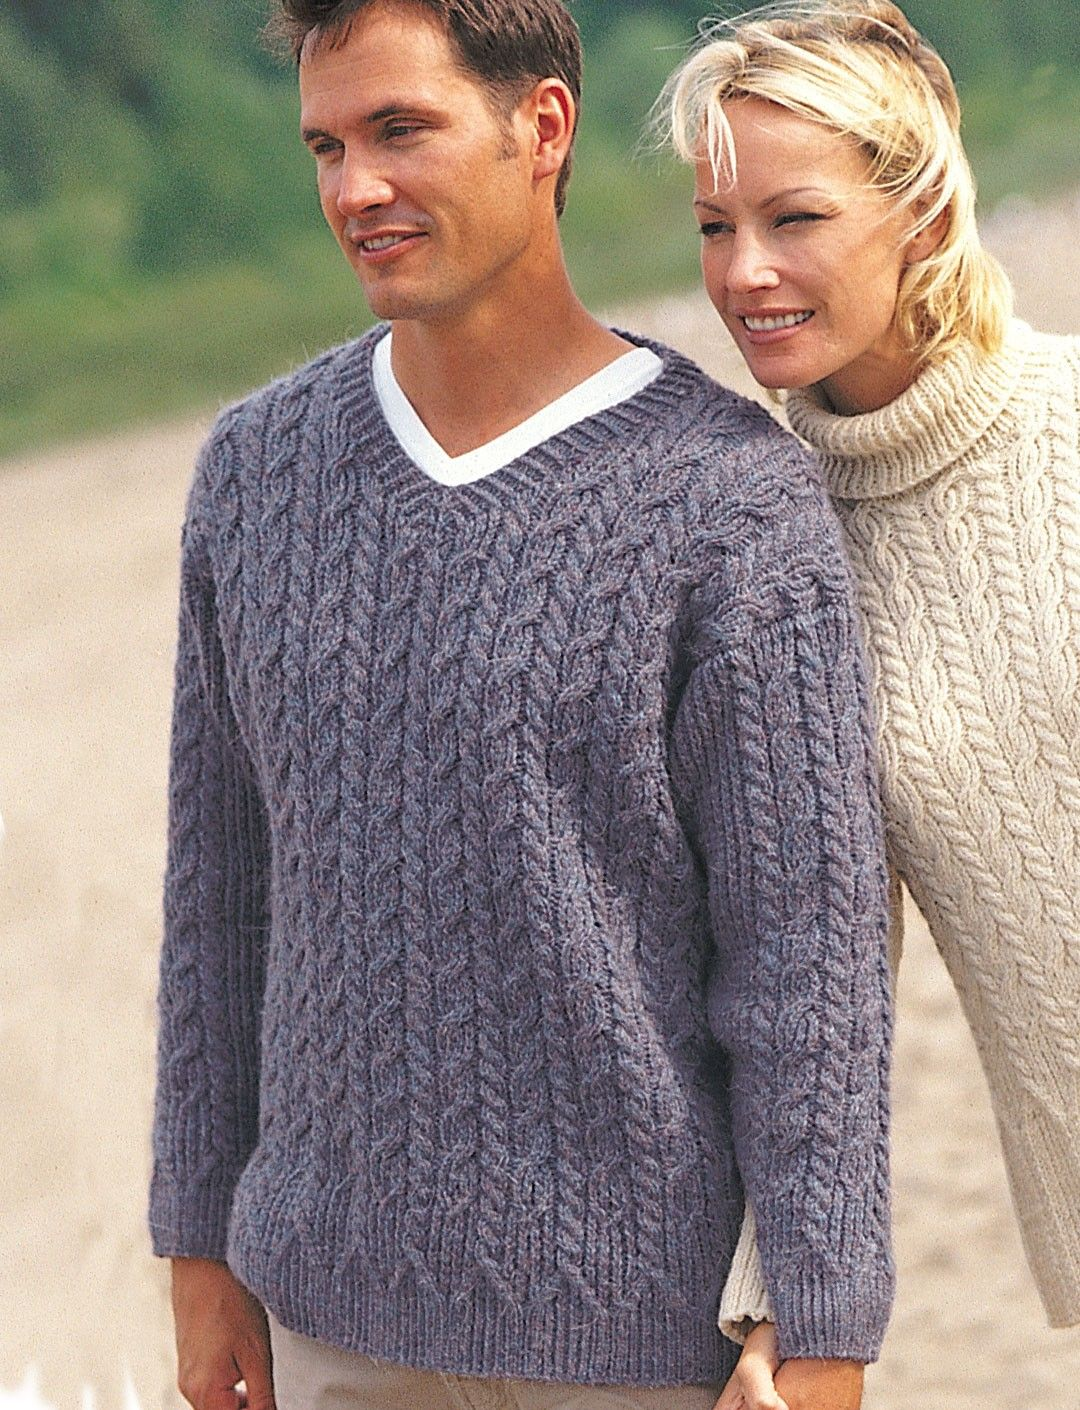 Yarnspirationscom Patons Casual Cables For Him Patterns